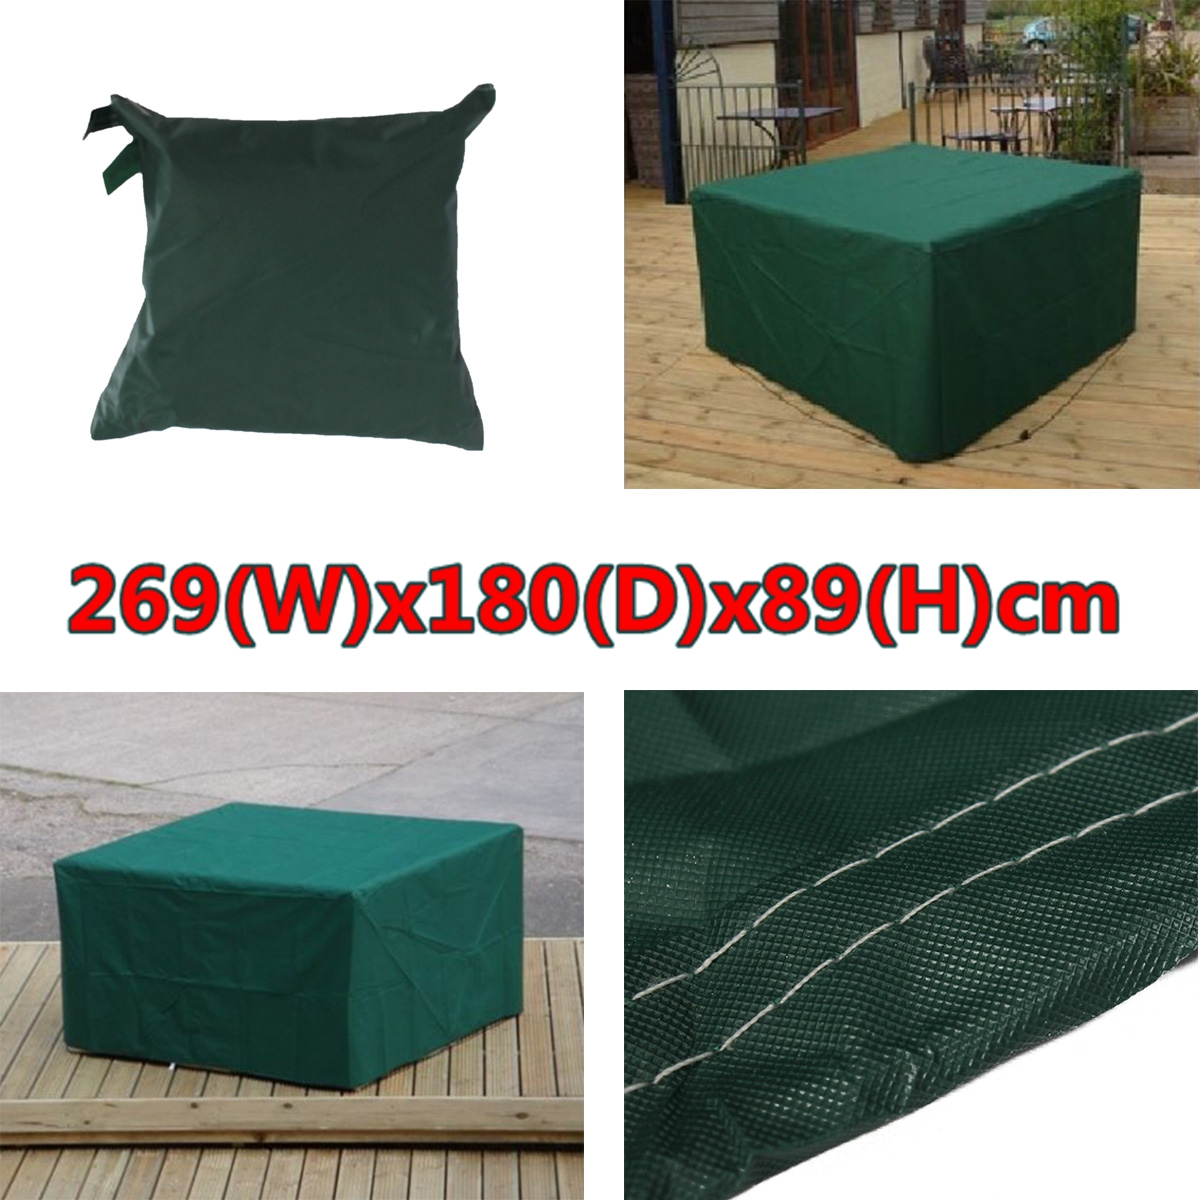 269x180x89cm Outdoor Patio Furniture Cover Waterproof Table Chair Cover UK ST